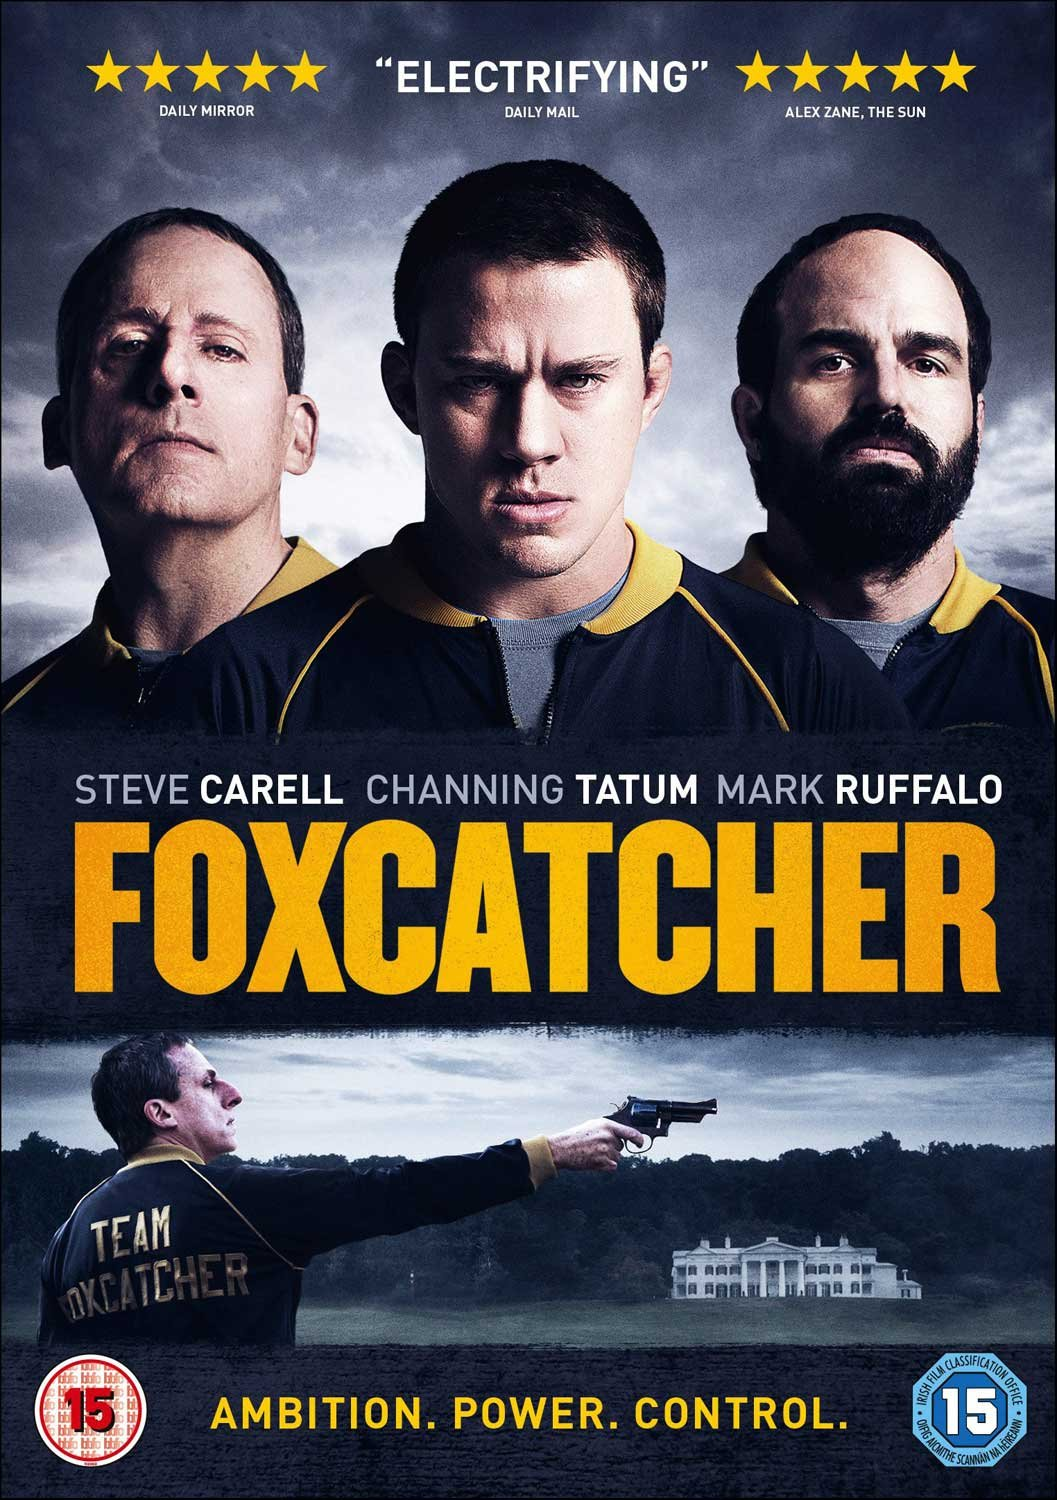 Amazon.in: Buy Foxcatcher [Import anglais] DVD, Blu-ray Online at Best Prices in India | Movies & TV Shows